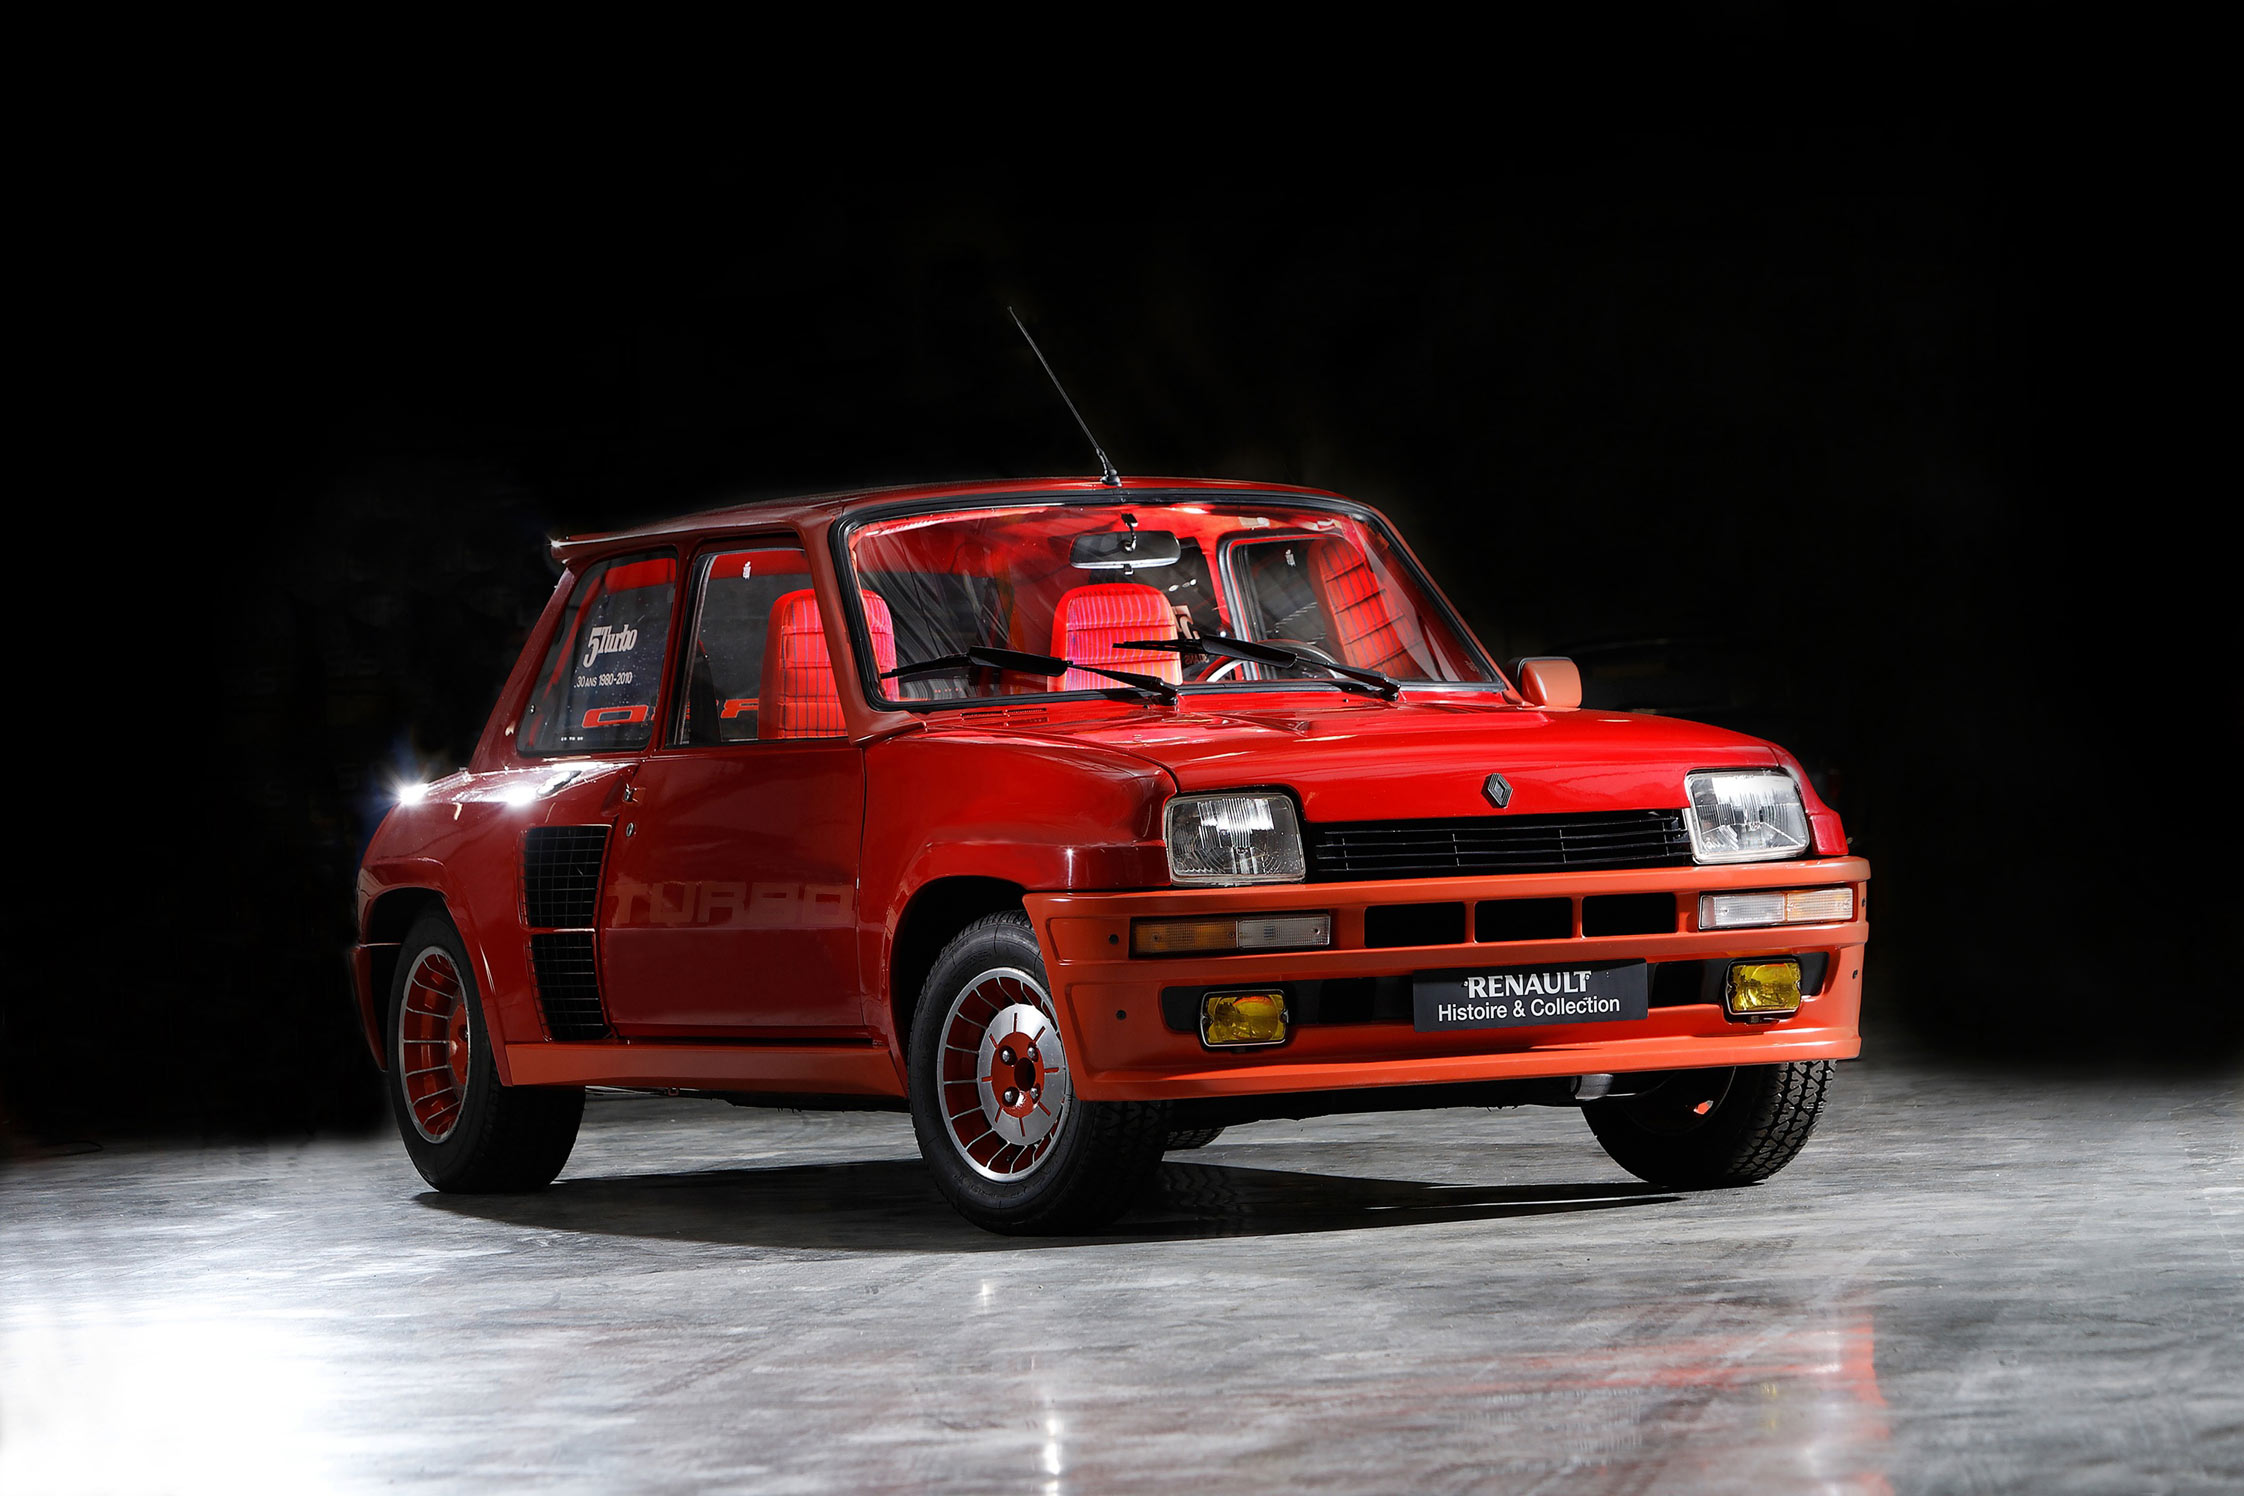 acheter une renault r5 turbo 1981 guide d 39 achat. Black Bedroom Furniture Sets. Home Design Ideas